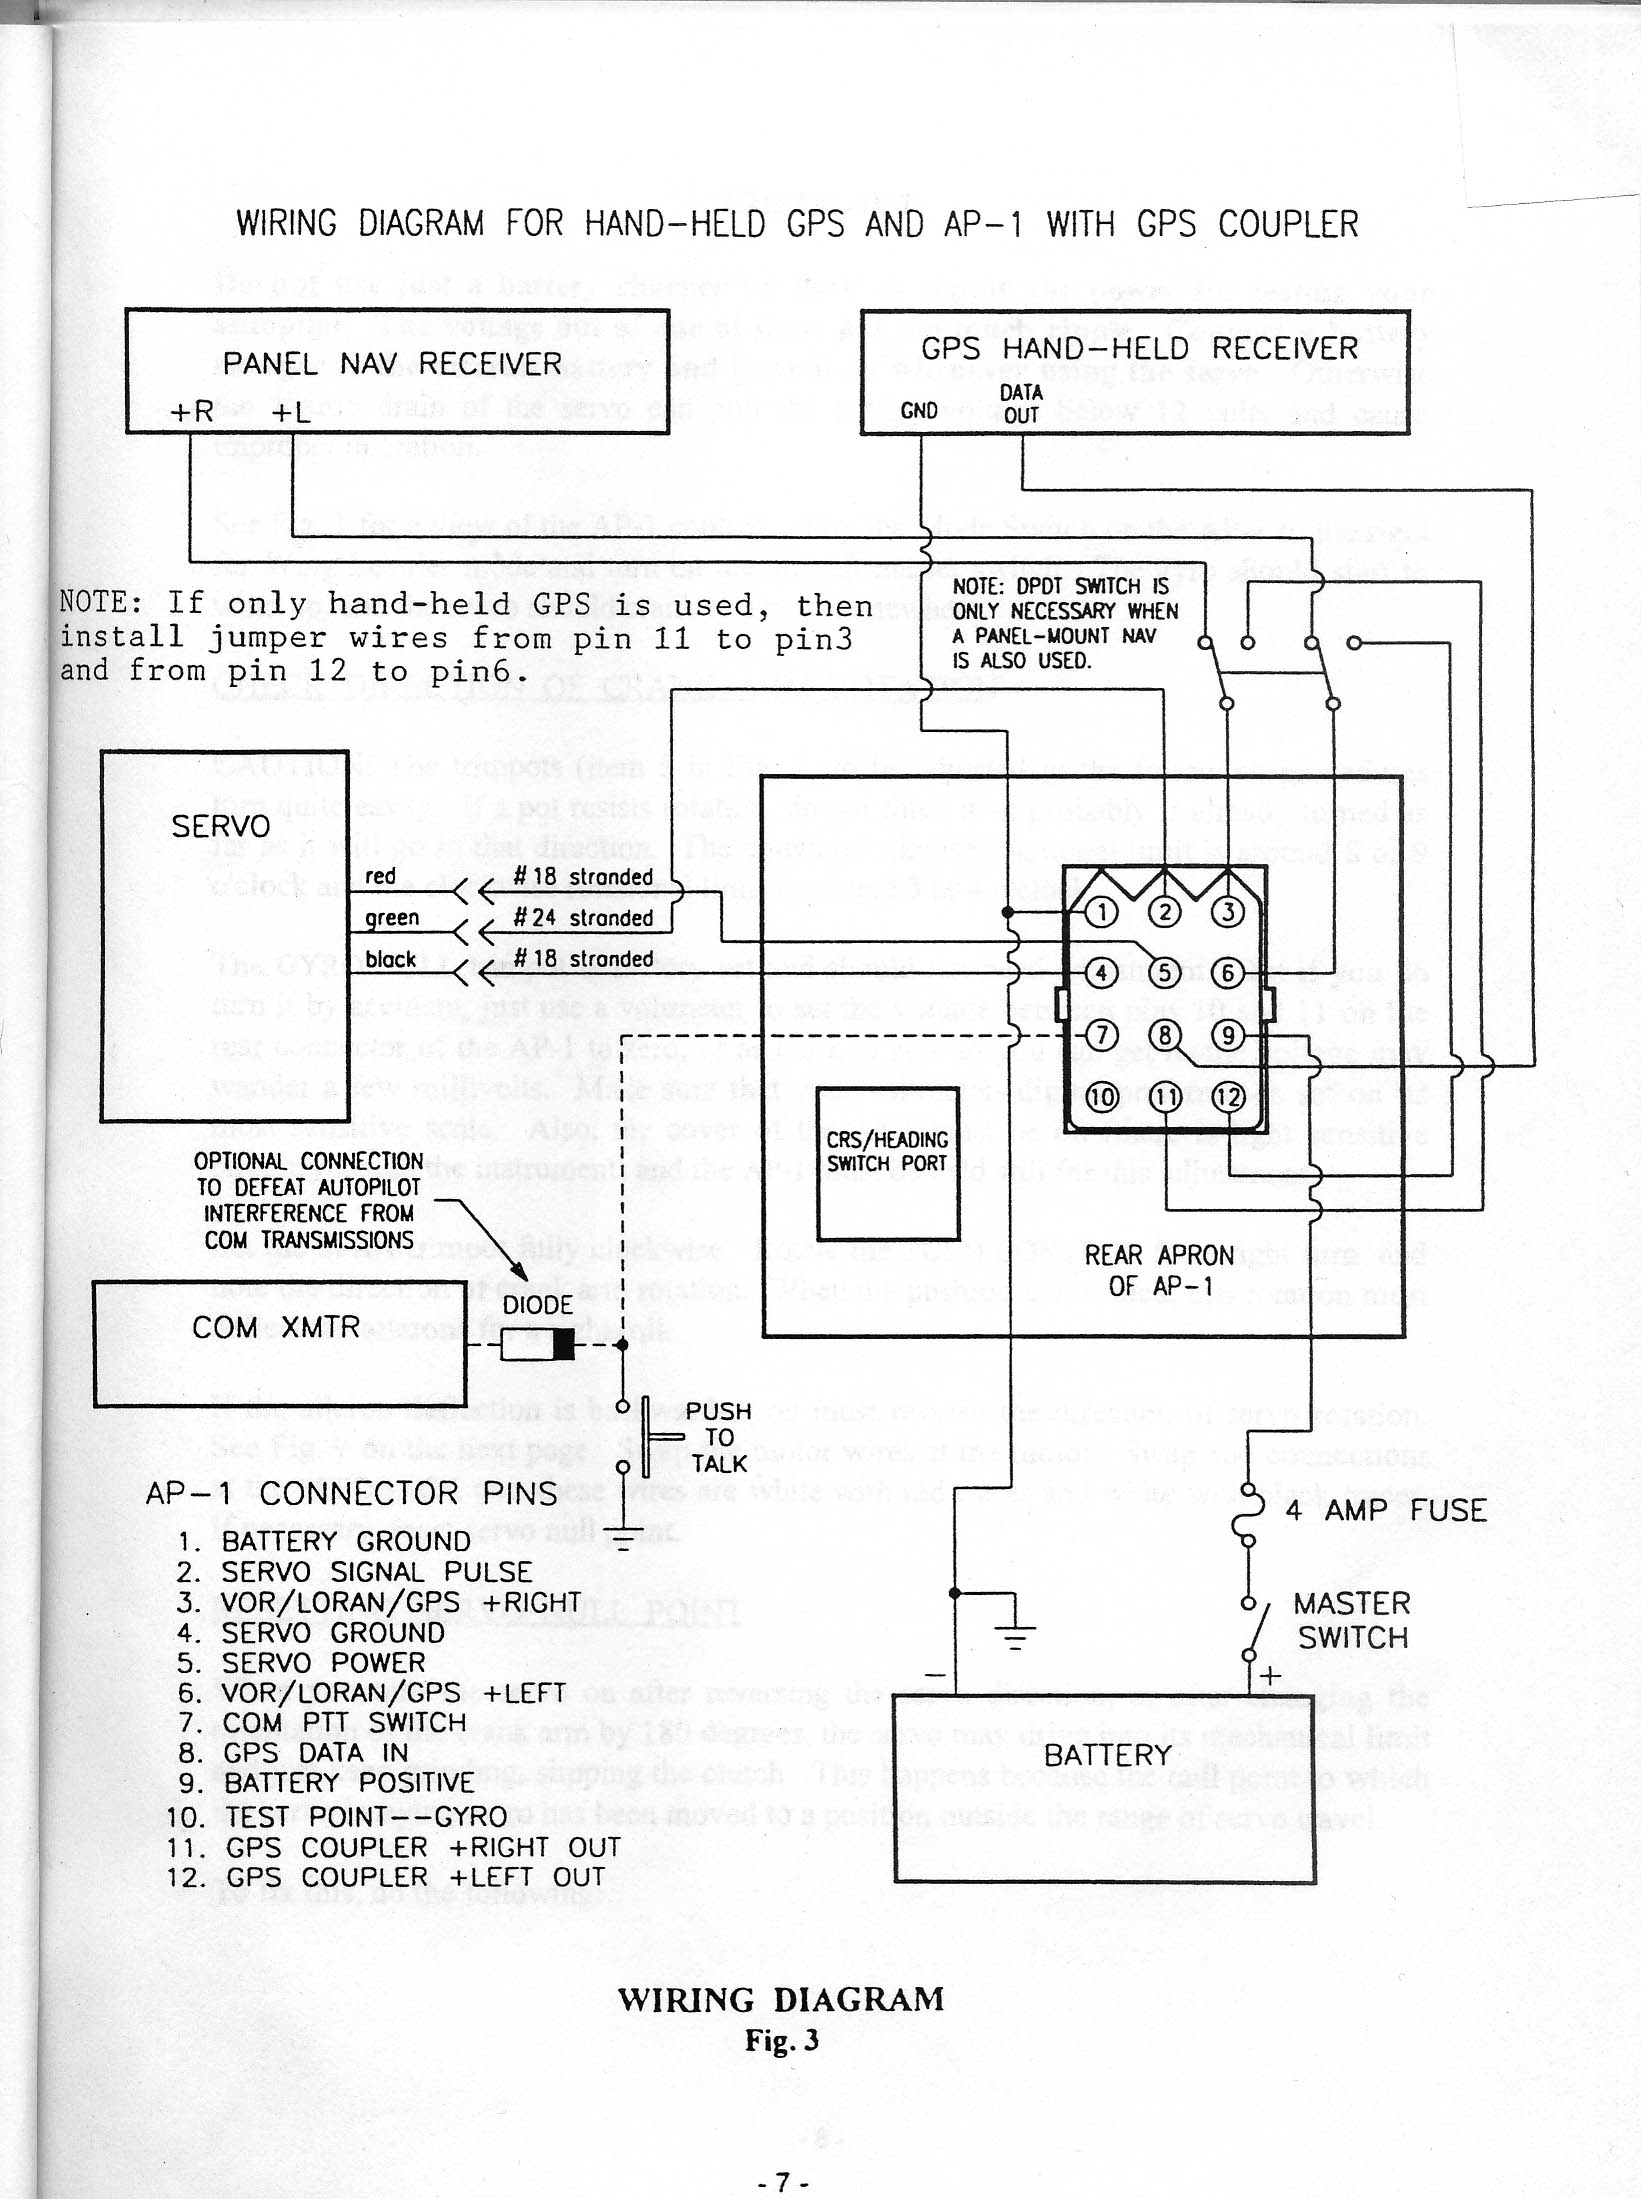 diagram king ky 92 wiring diagram automotive wiring diagrams \u2022 wiring king ka 134 audio panel wiring diagram at nearapp.co